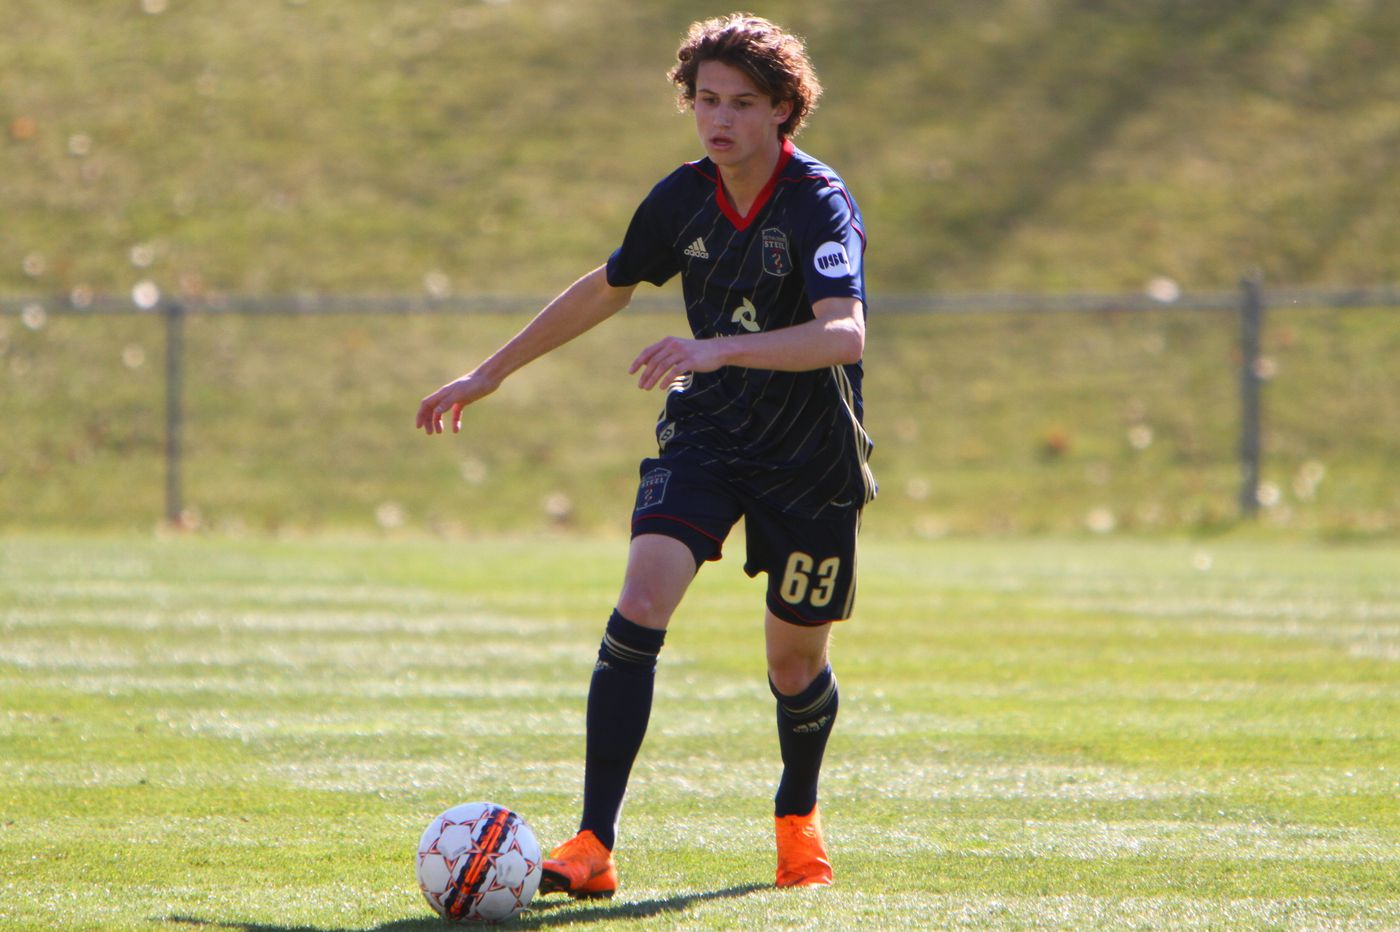 Union sign playmaker Brenden Aaronson, 17-year-old Medford native, to contract for 2019 season